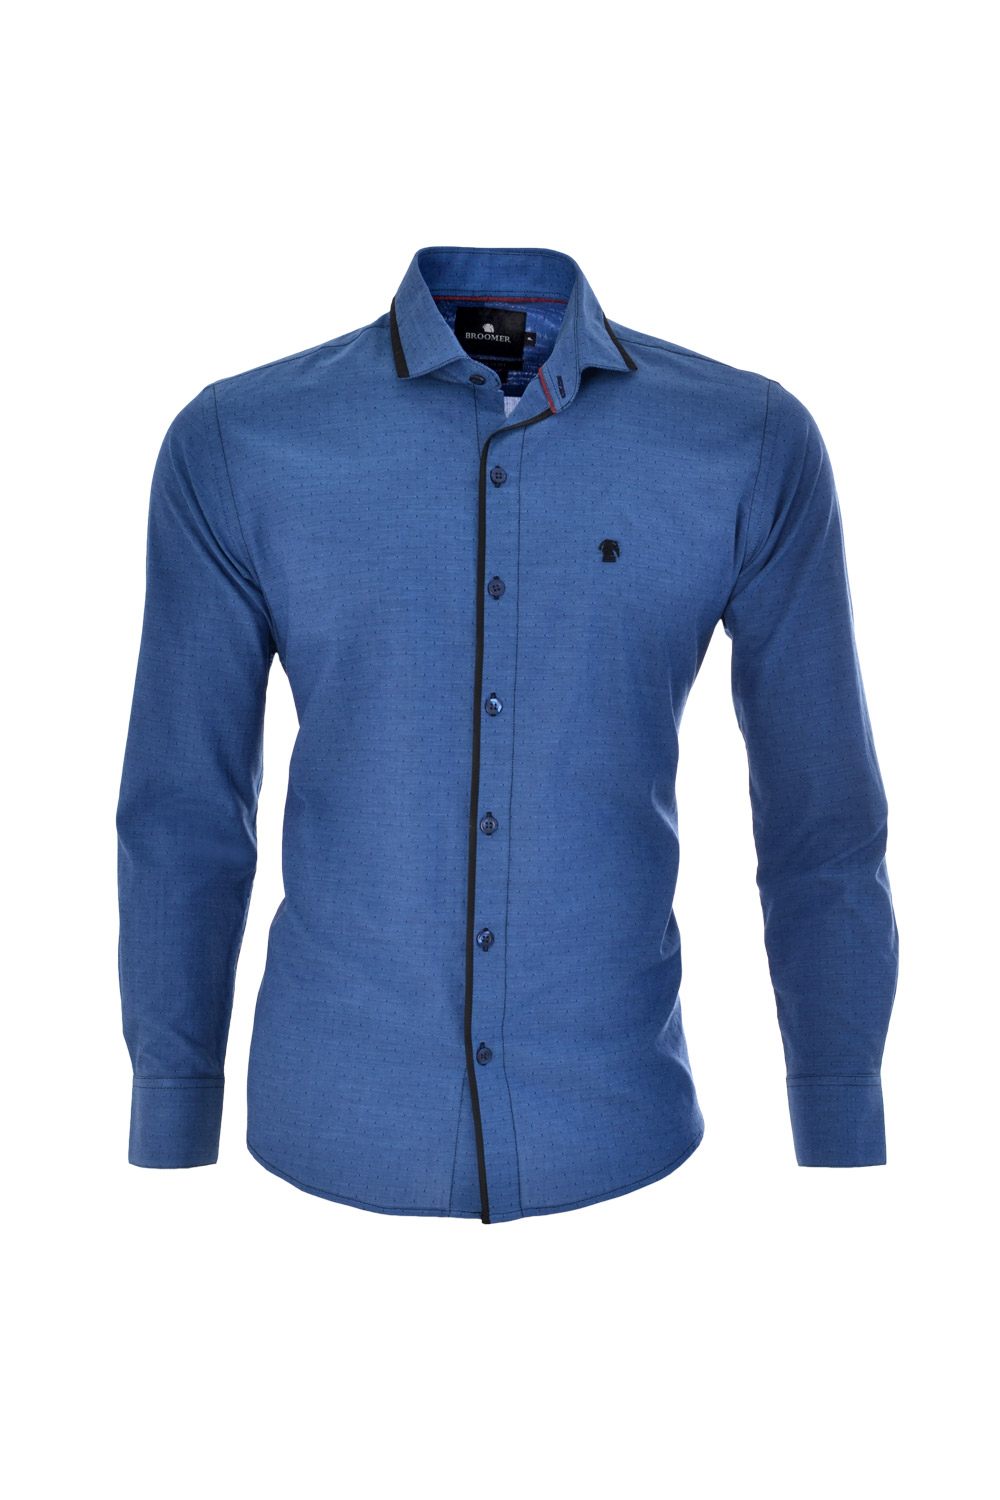 CAMISA ML FASHION SUPER SLIM ALGODAO FIO TINTO PETIT-POIS AZUL MEDIO